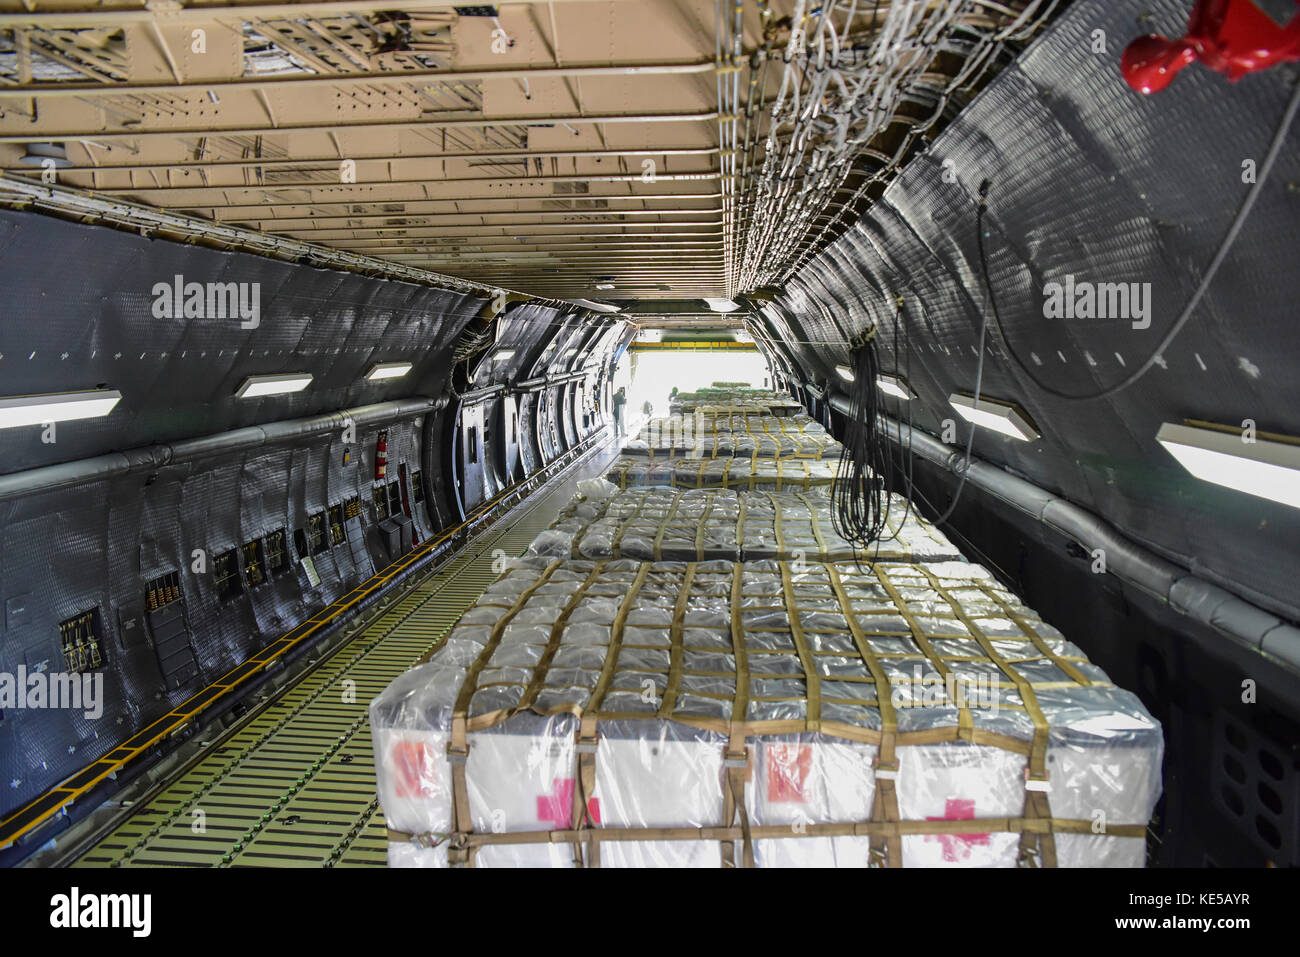 Pallets of supplies ready to be delivered to Texas in support of Hurricane Harvey relief efforts. - Stock Image